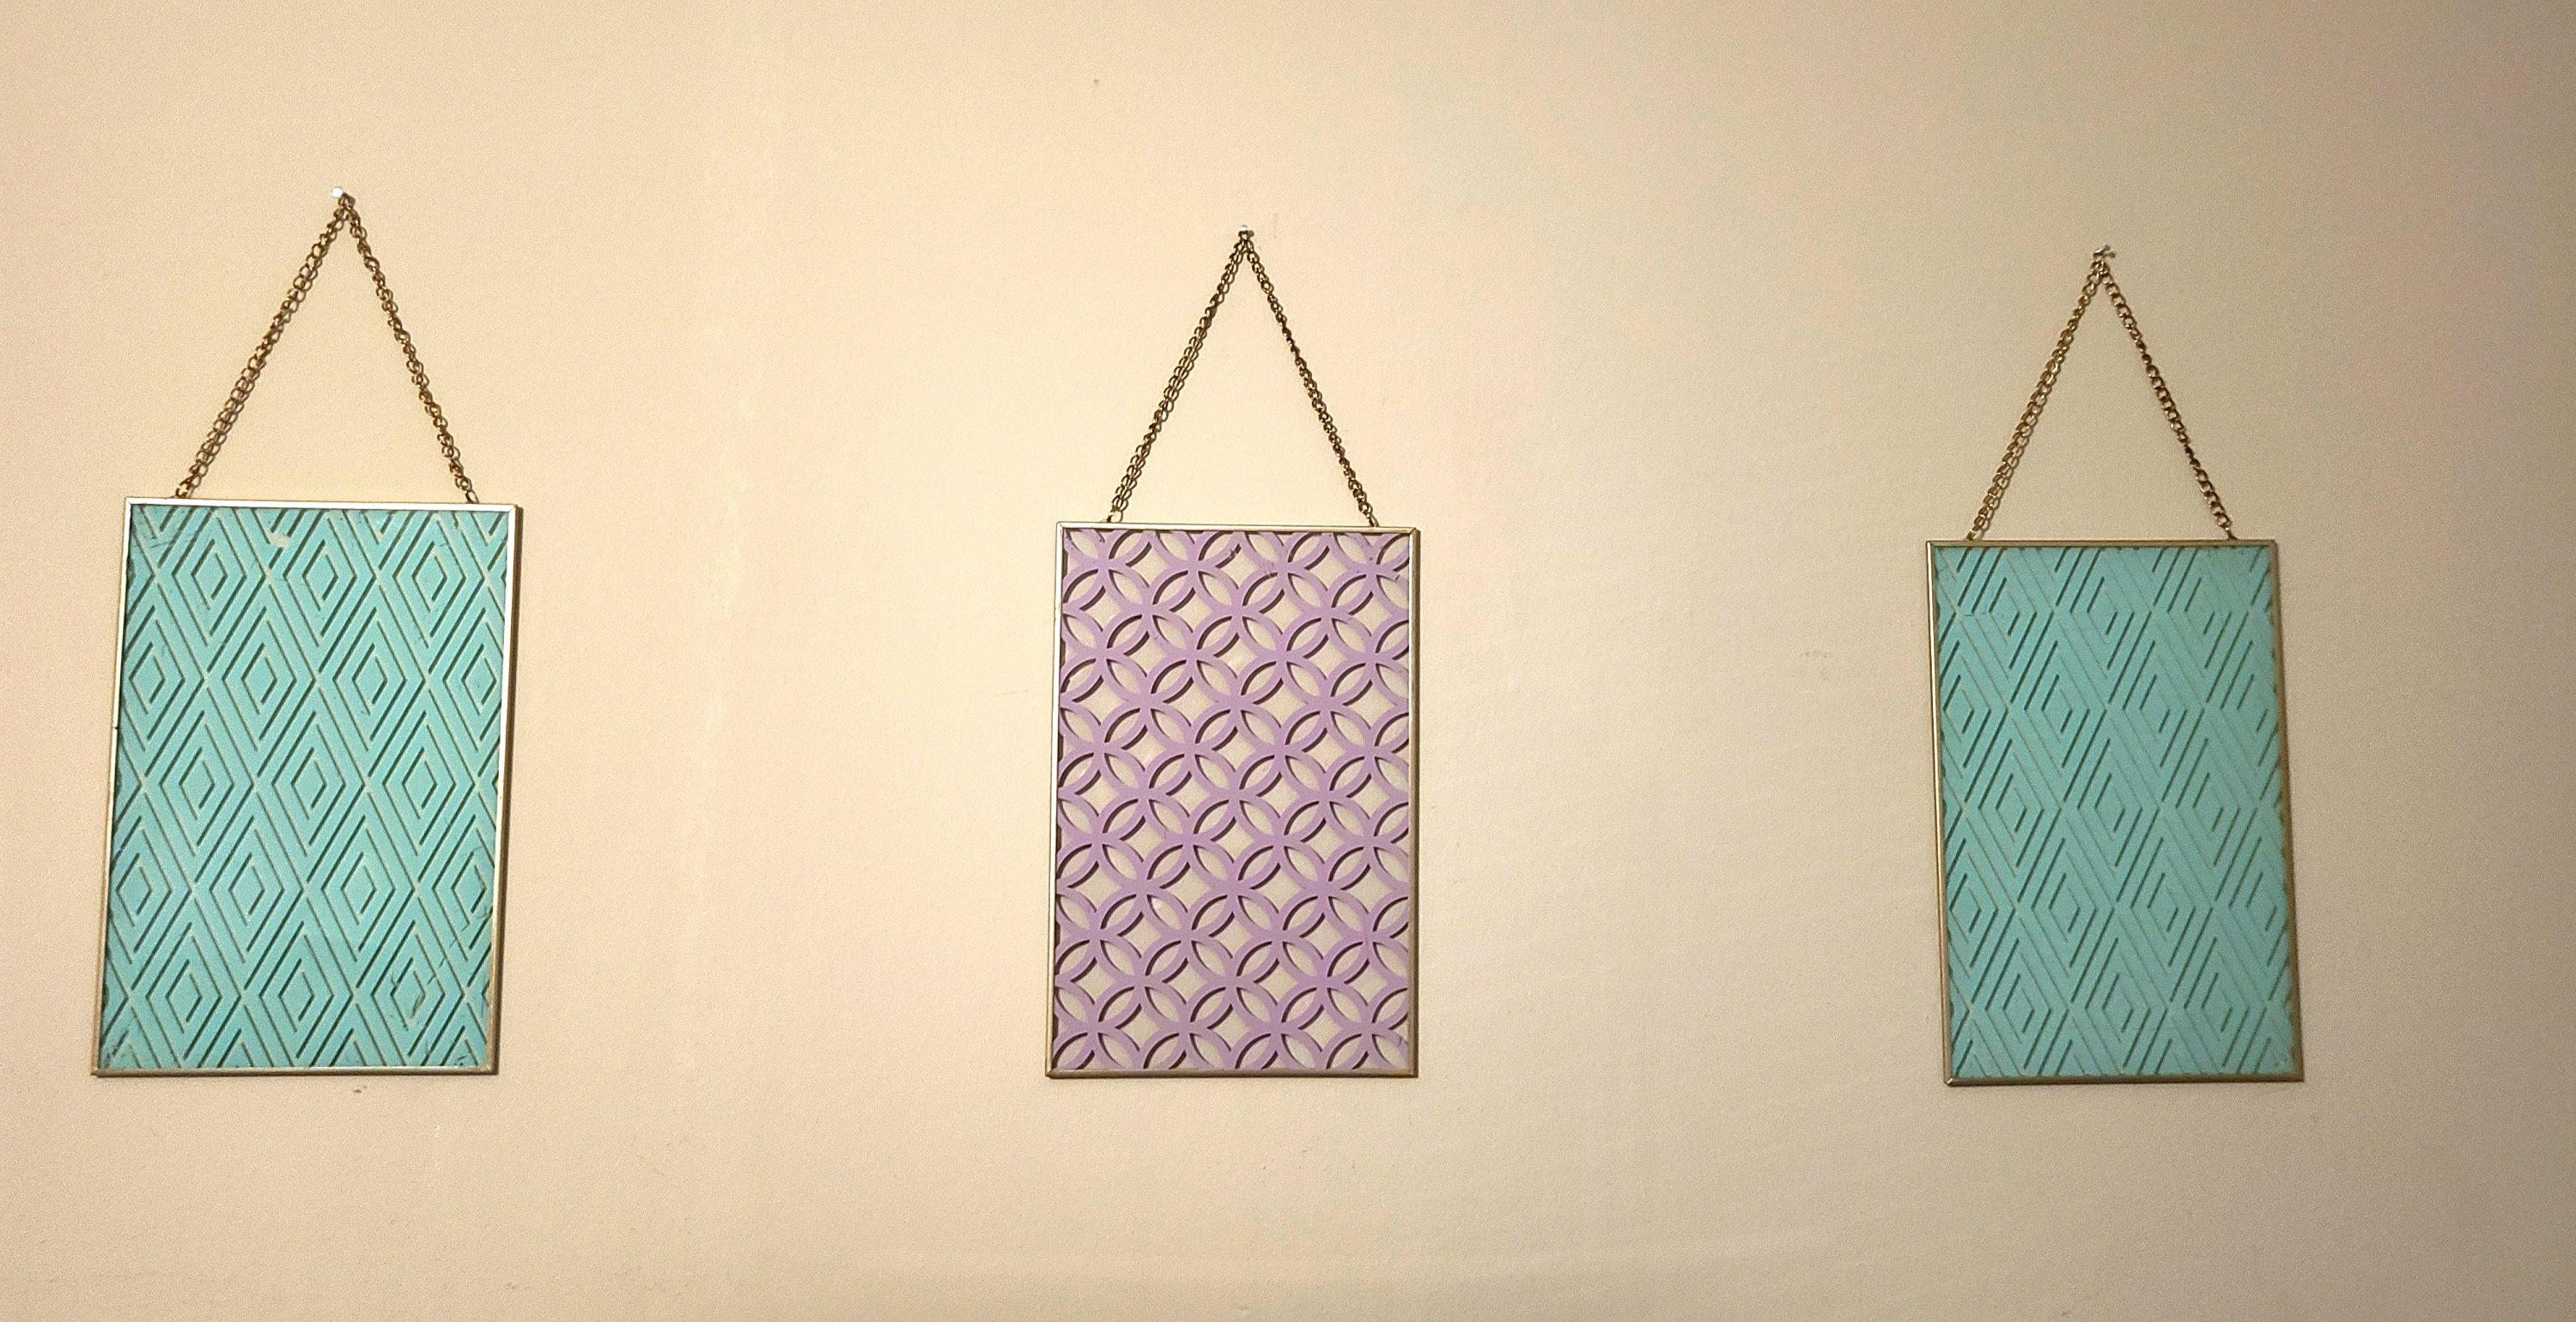 Craft room makeover: glass wall art for the walls. Two aqua with gold rim & chains and one purple with gold rim & chain.